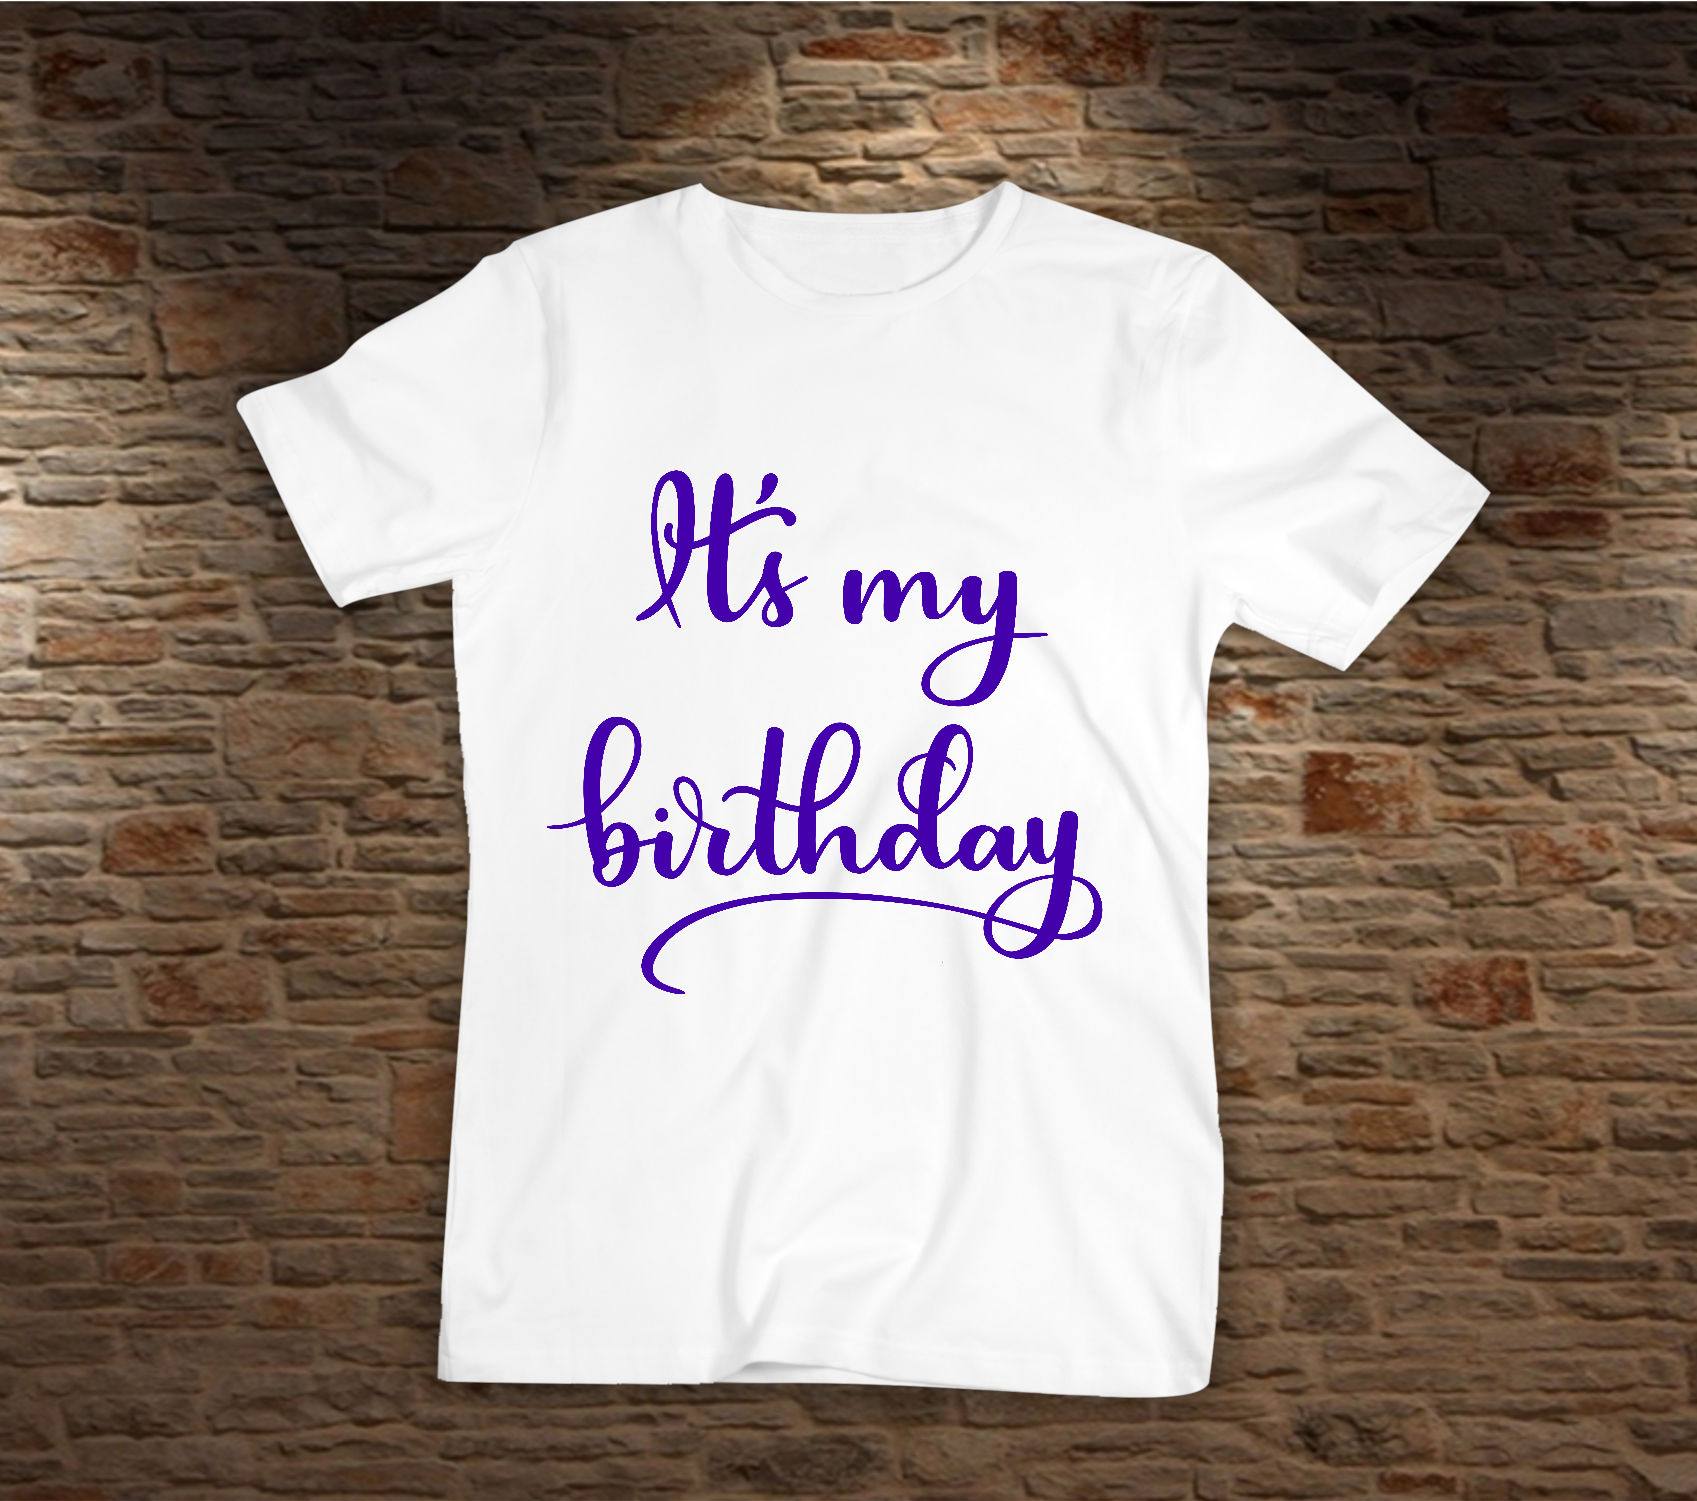 Birthday SVG - It's my birthday cut file, Handlettered example image 3